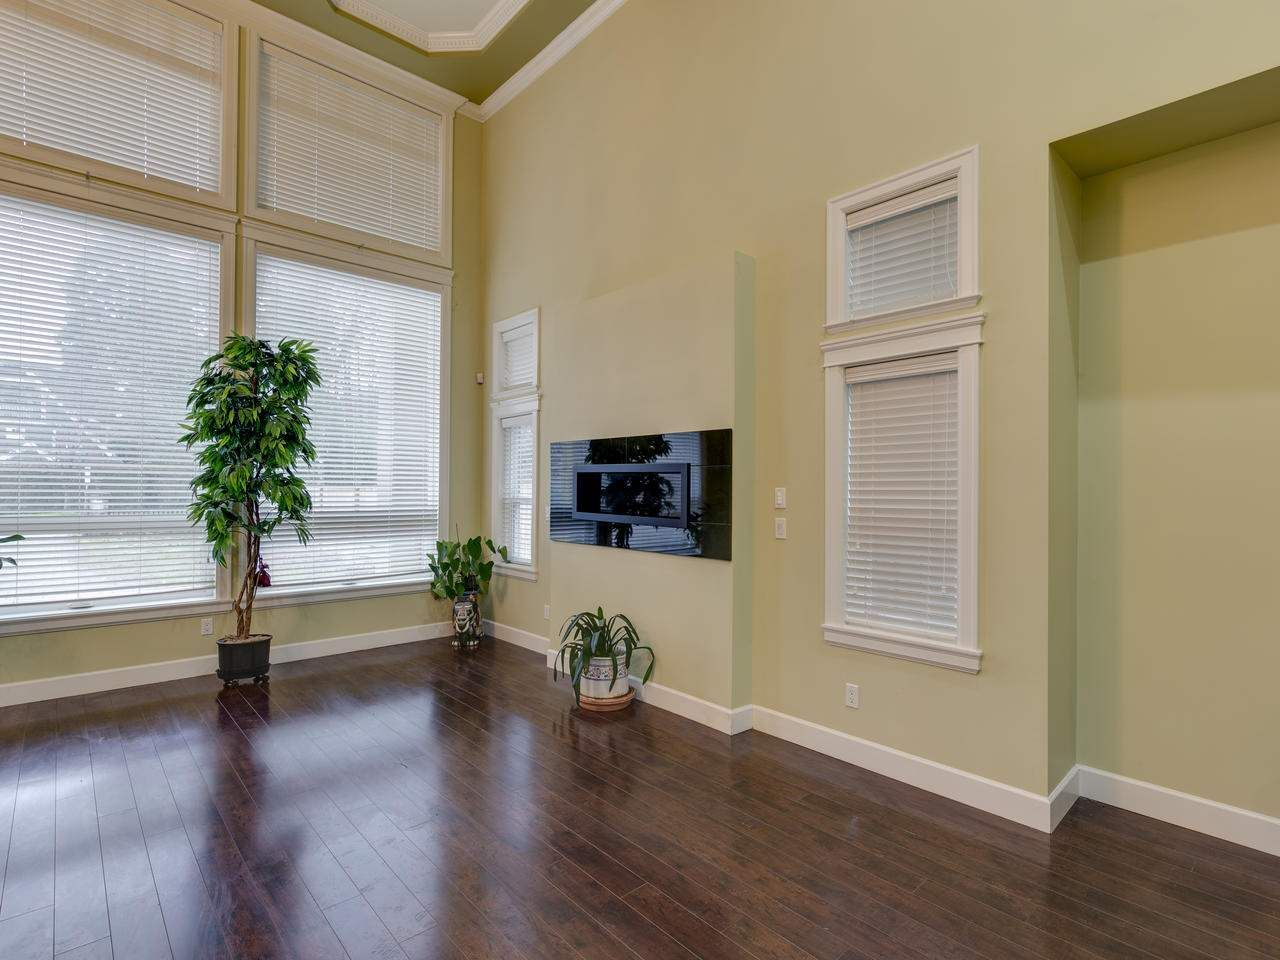 Photo 7: Photos: 7490 NO. 4 Road in Richmond: McLennan House for sale : MLS®# R2425068